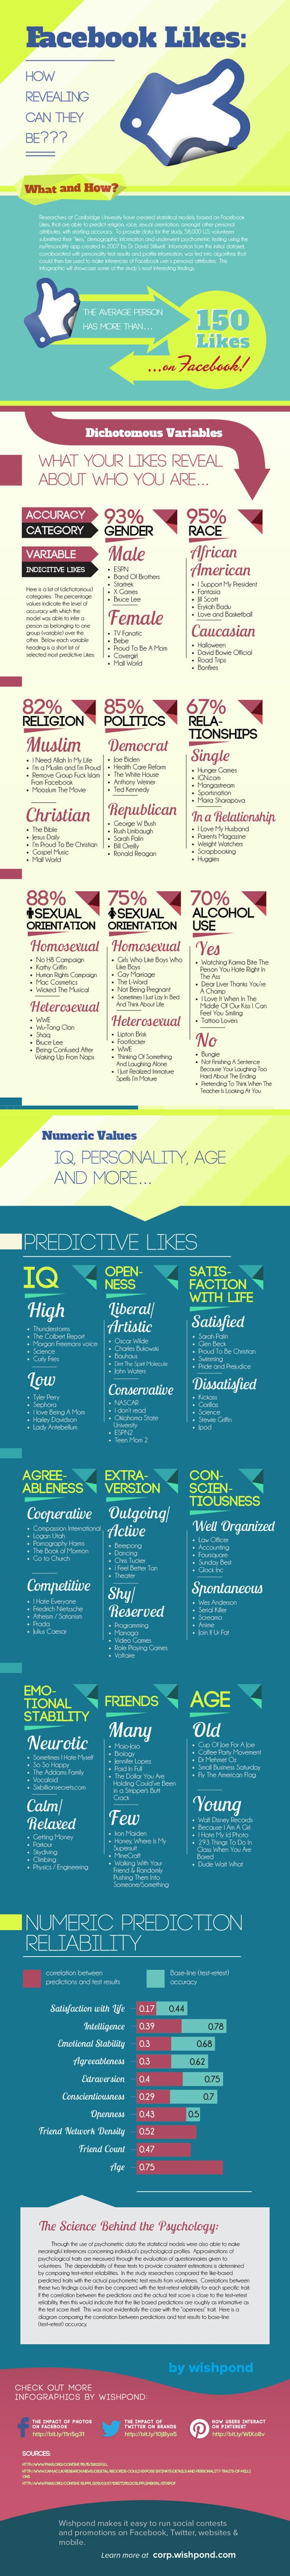 revealing-your-facebook-likes-infographic